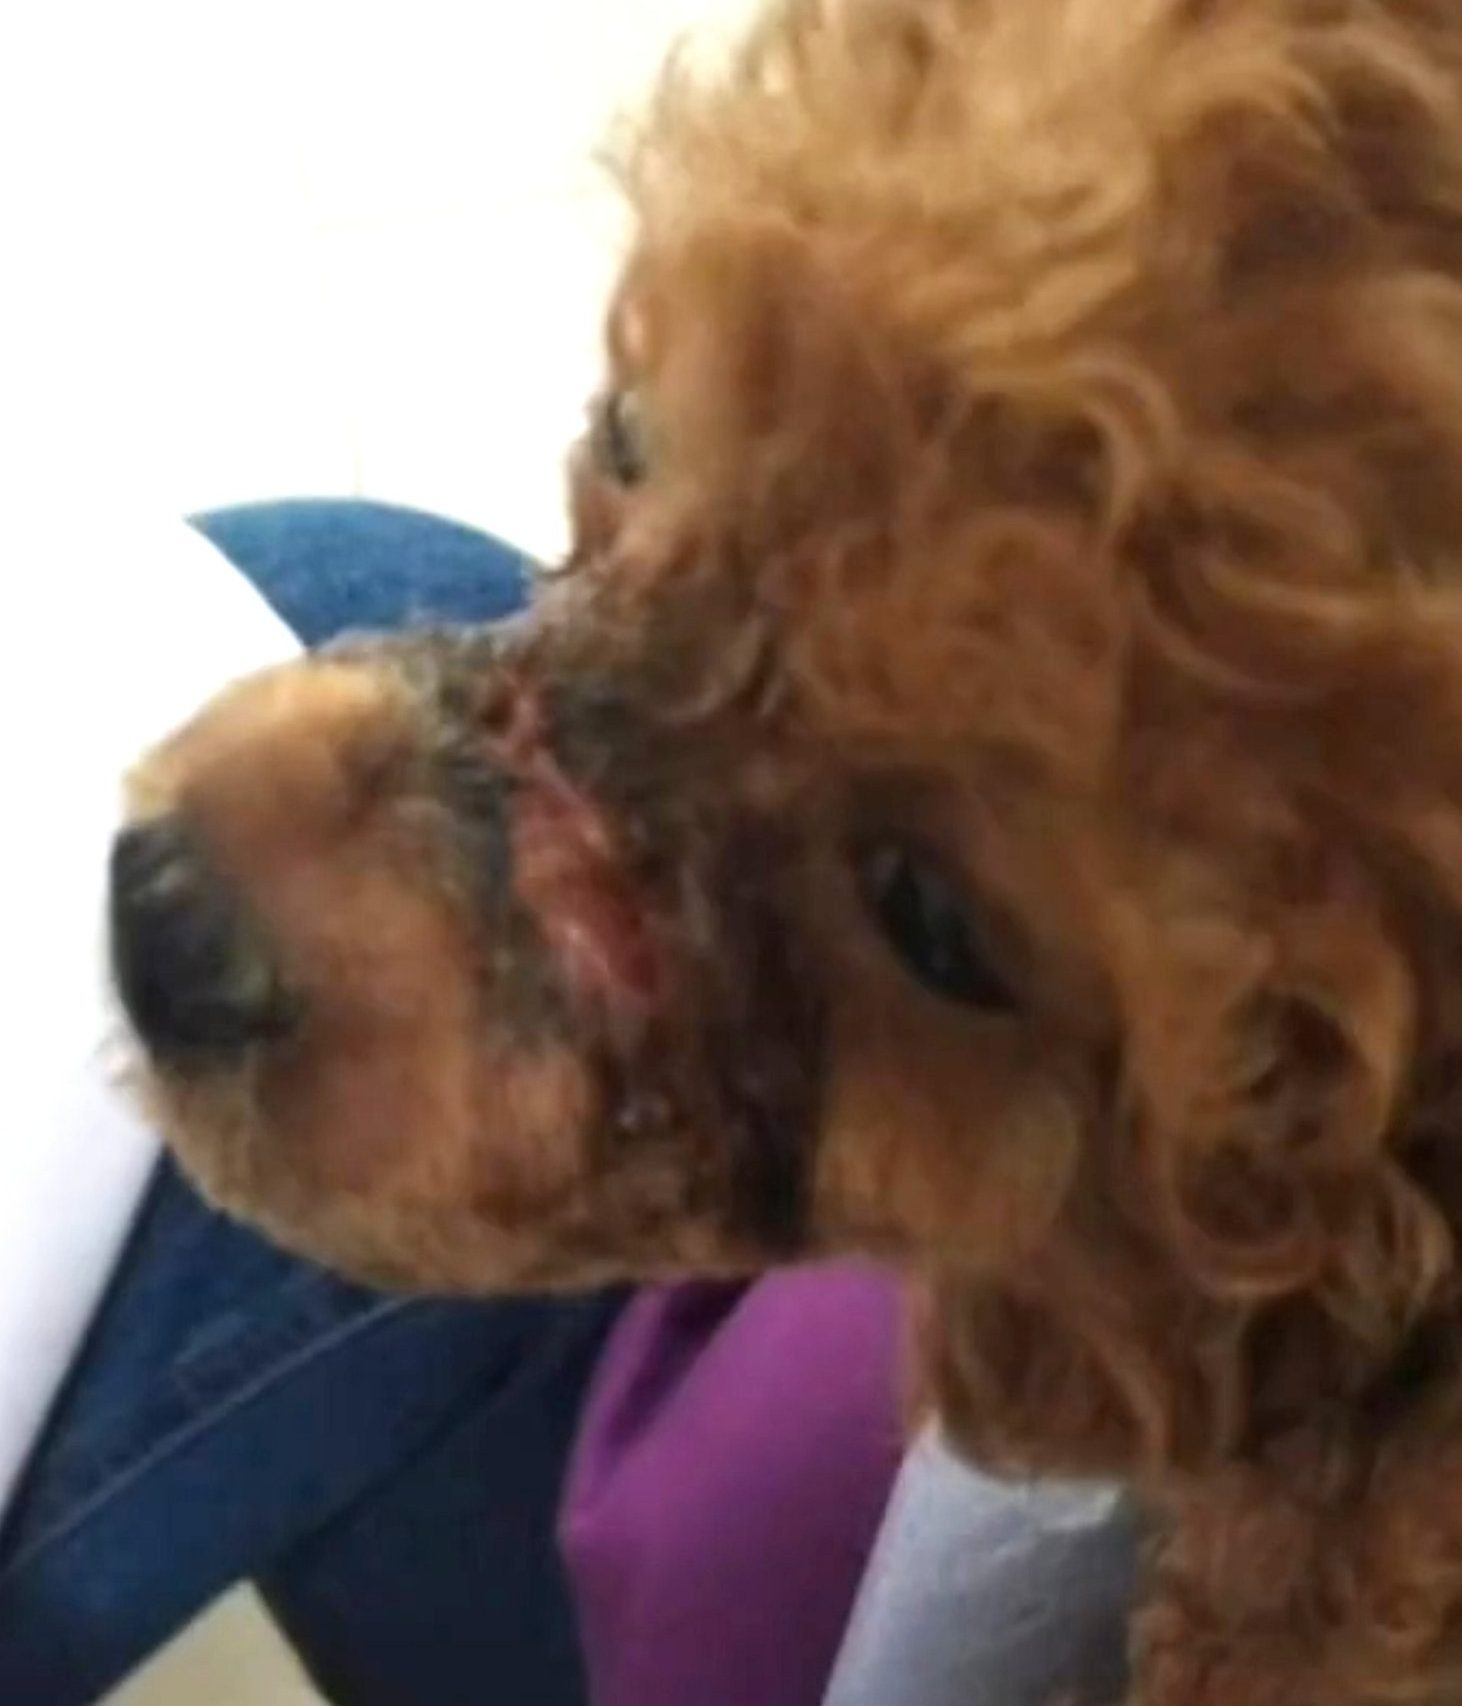 Puppy's mouth forced shut with rubber band to stop it barking